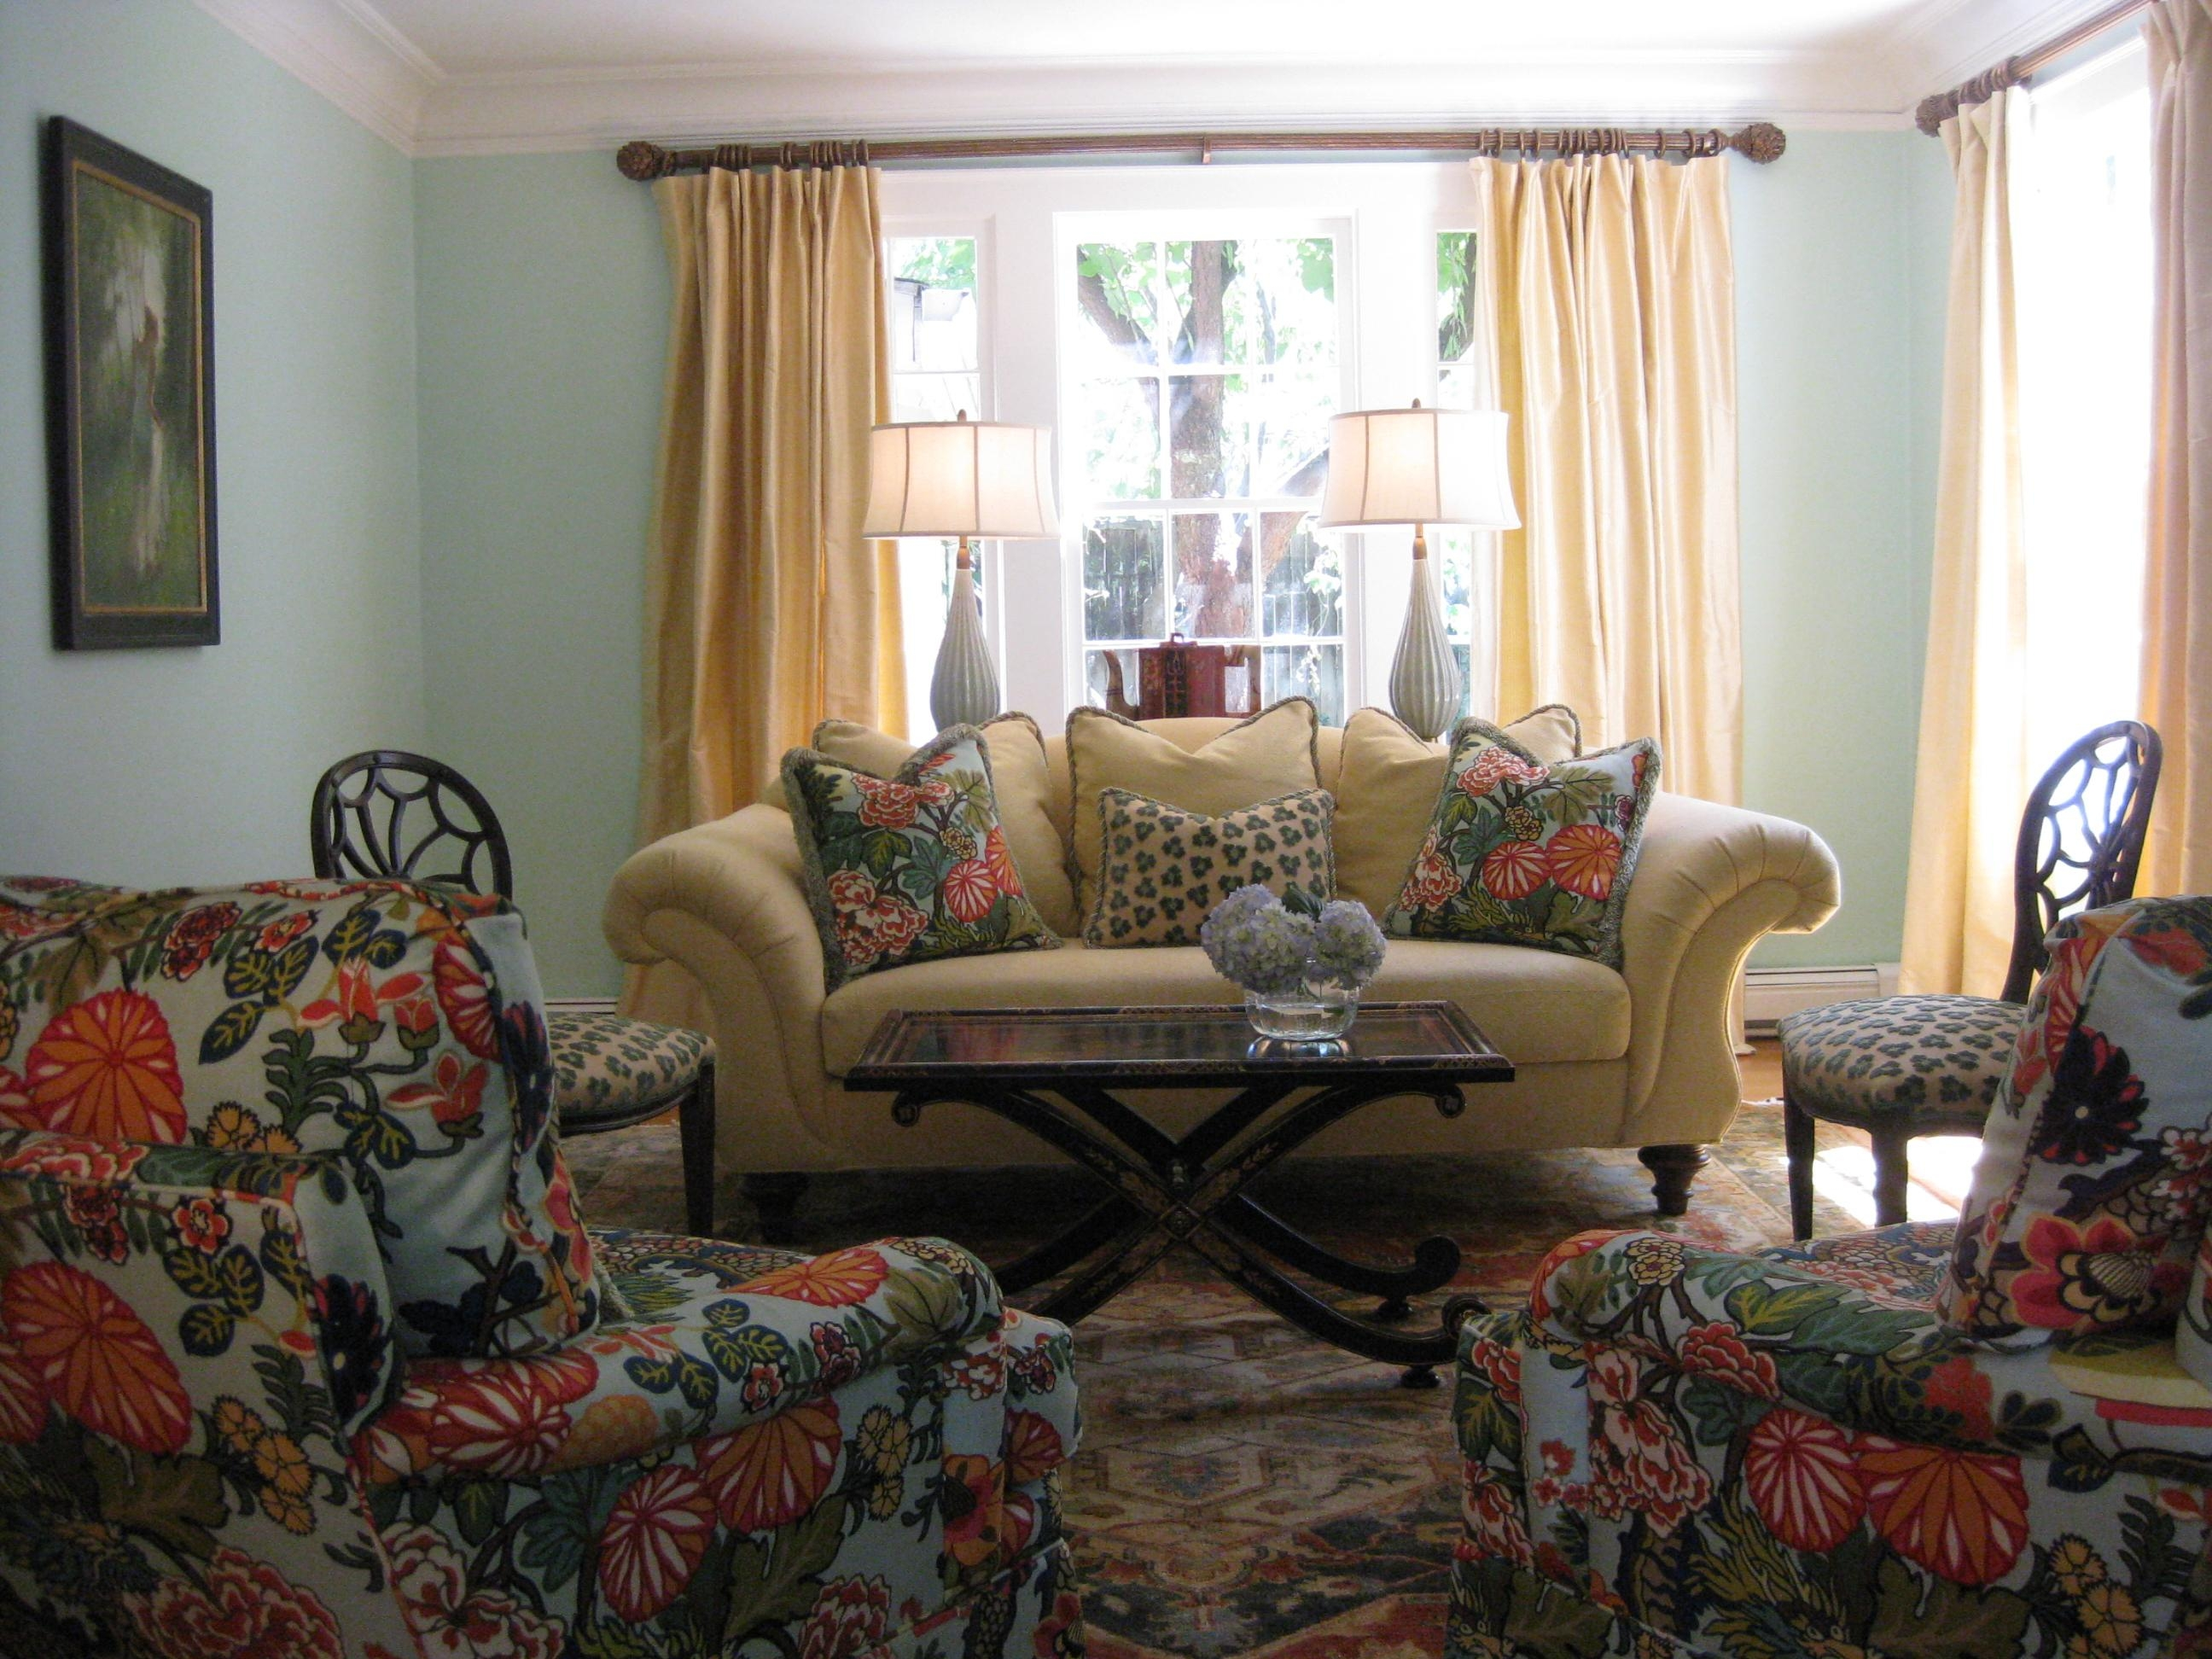 Fabric Sofa Styles Intended For Floral Sofas And Chairs (Image 9 of 20)